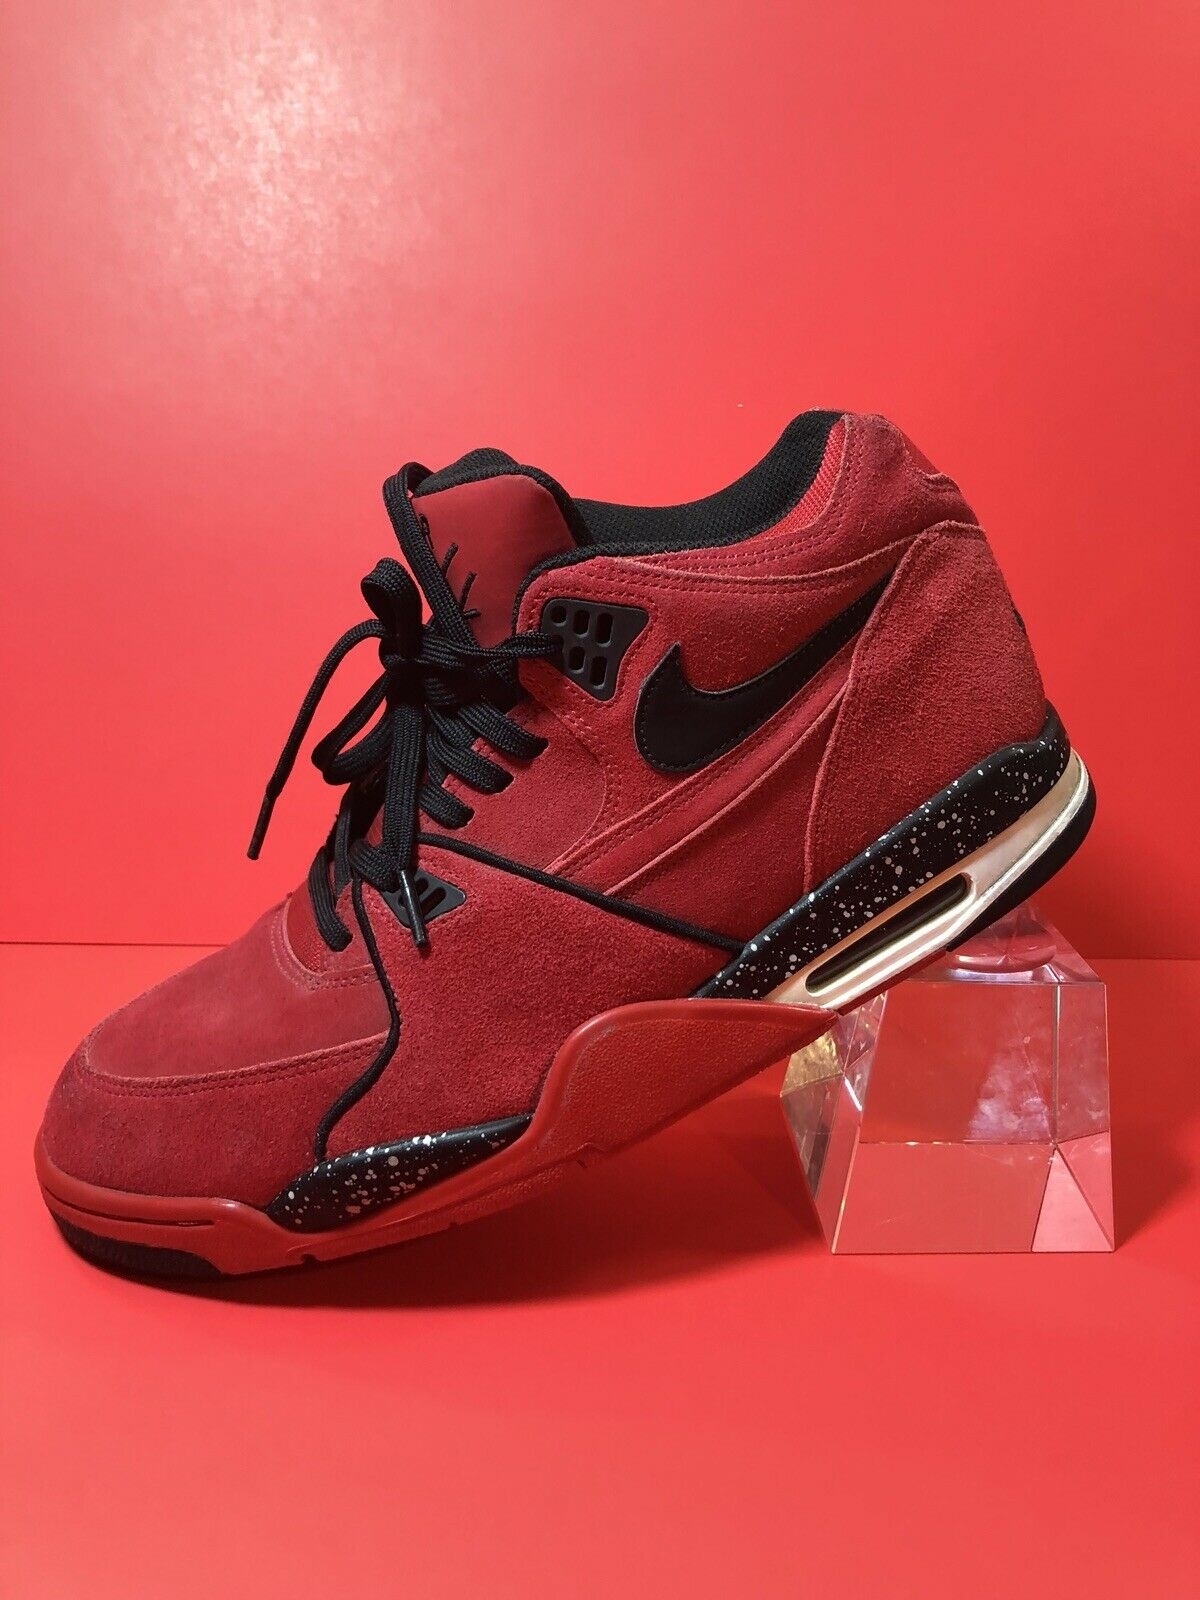 Nike Air Flight 89 Red Mens Sz 12 US Basketball Athletic shoes 306252- 600 OG